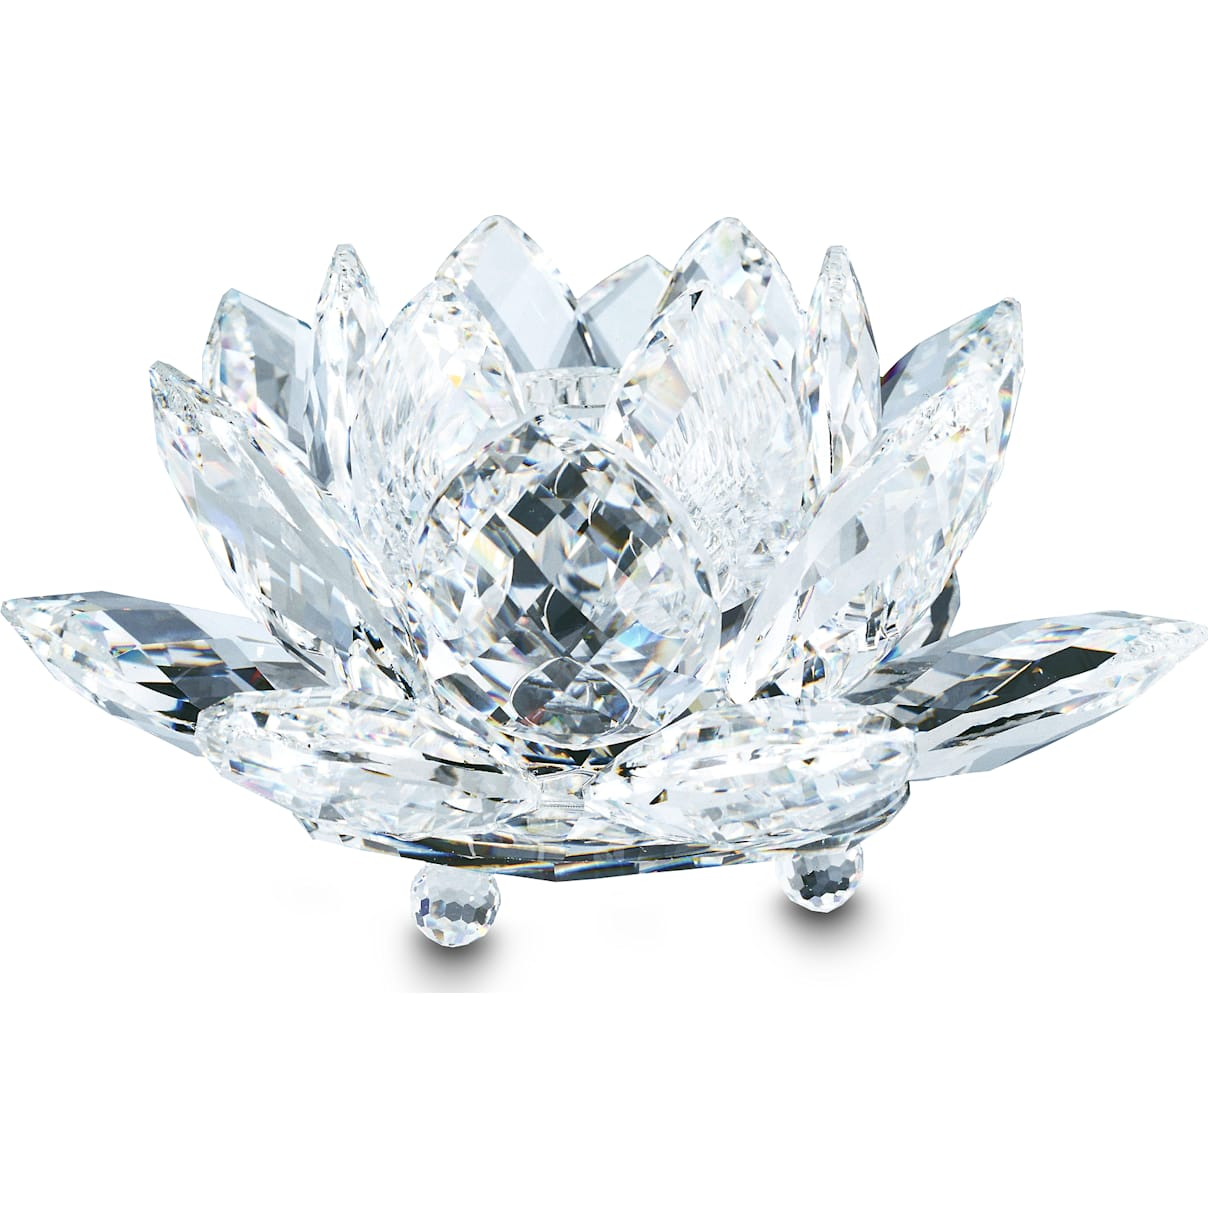 Swarovski Waterlily Candleholder, large